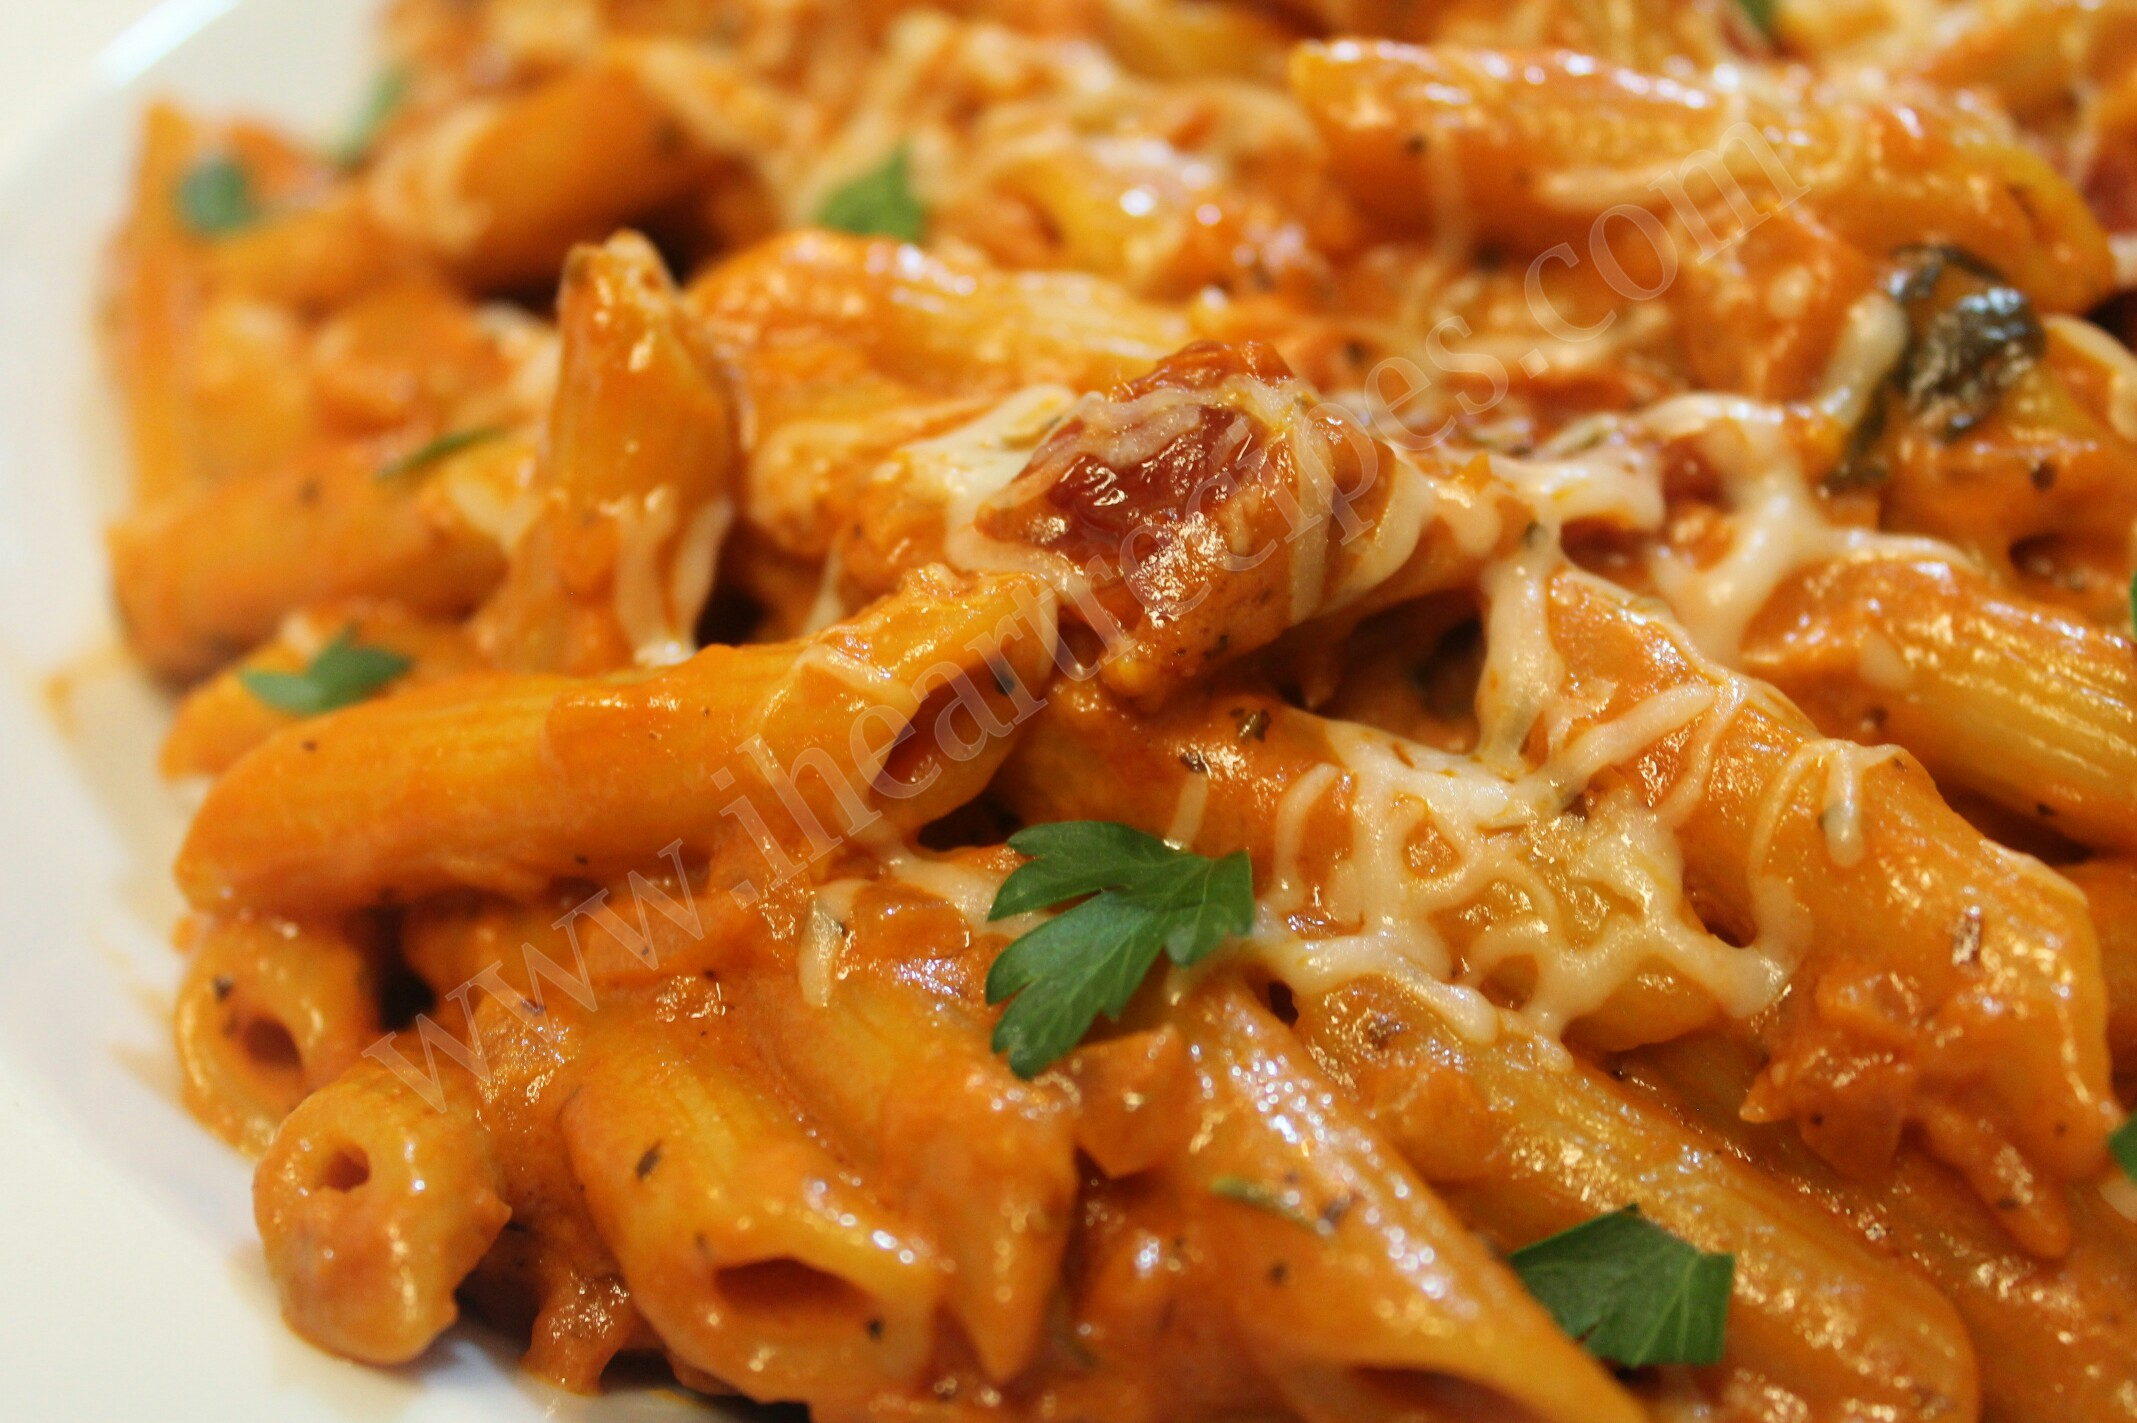 Penne with Homemade Vodka Sauce is decadent and easy!